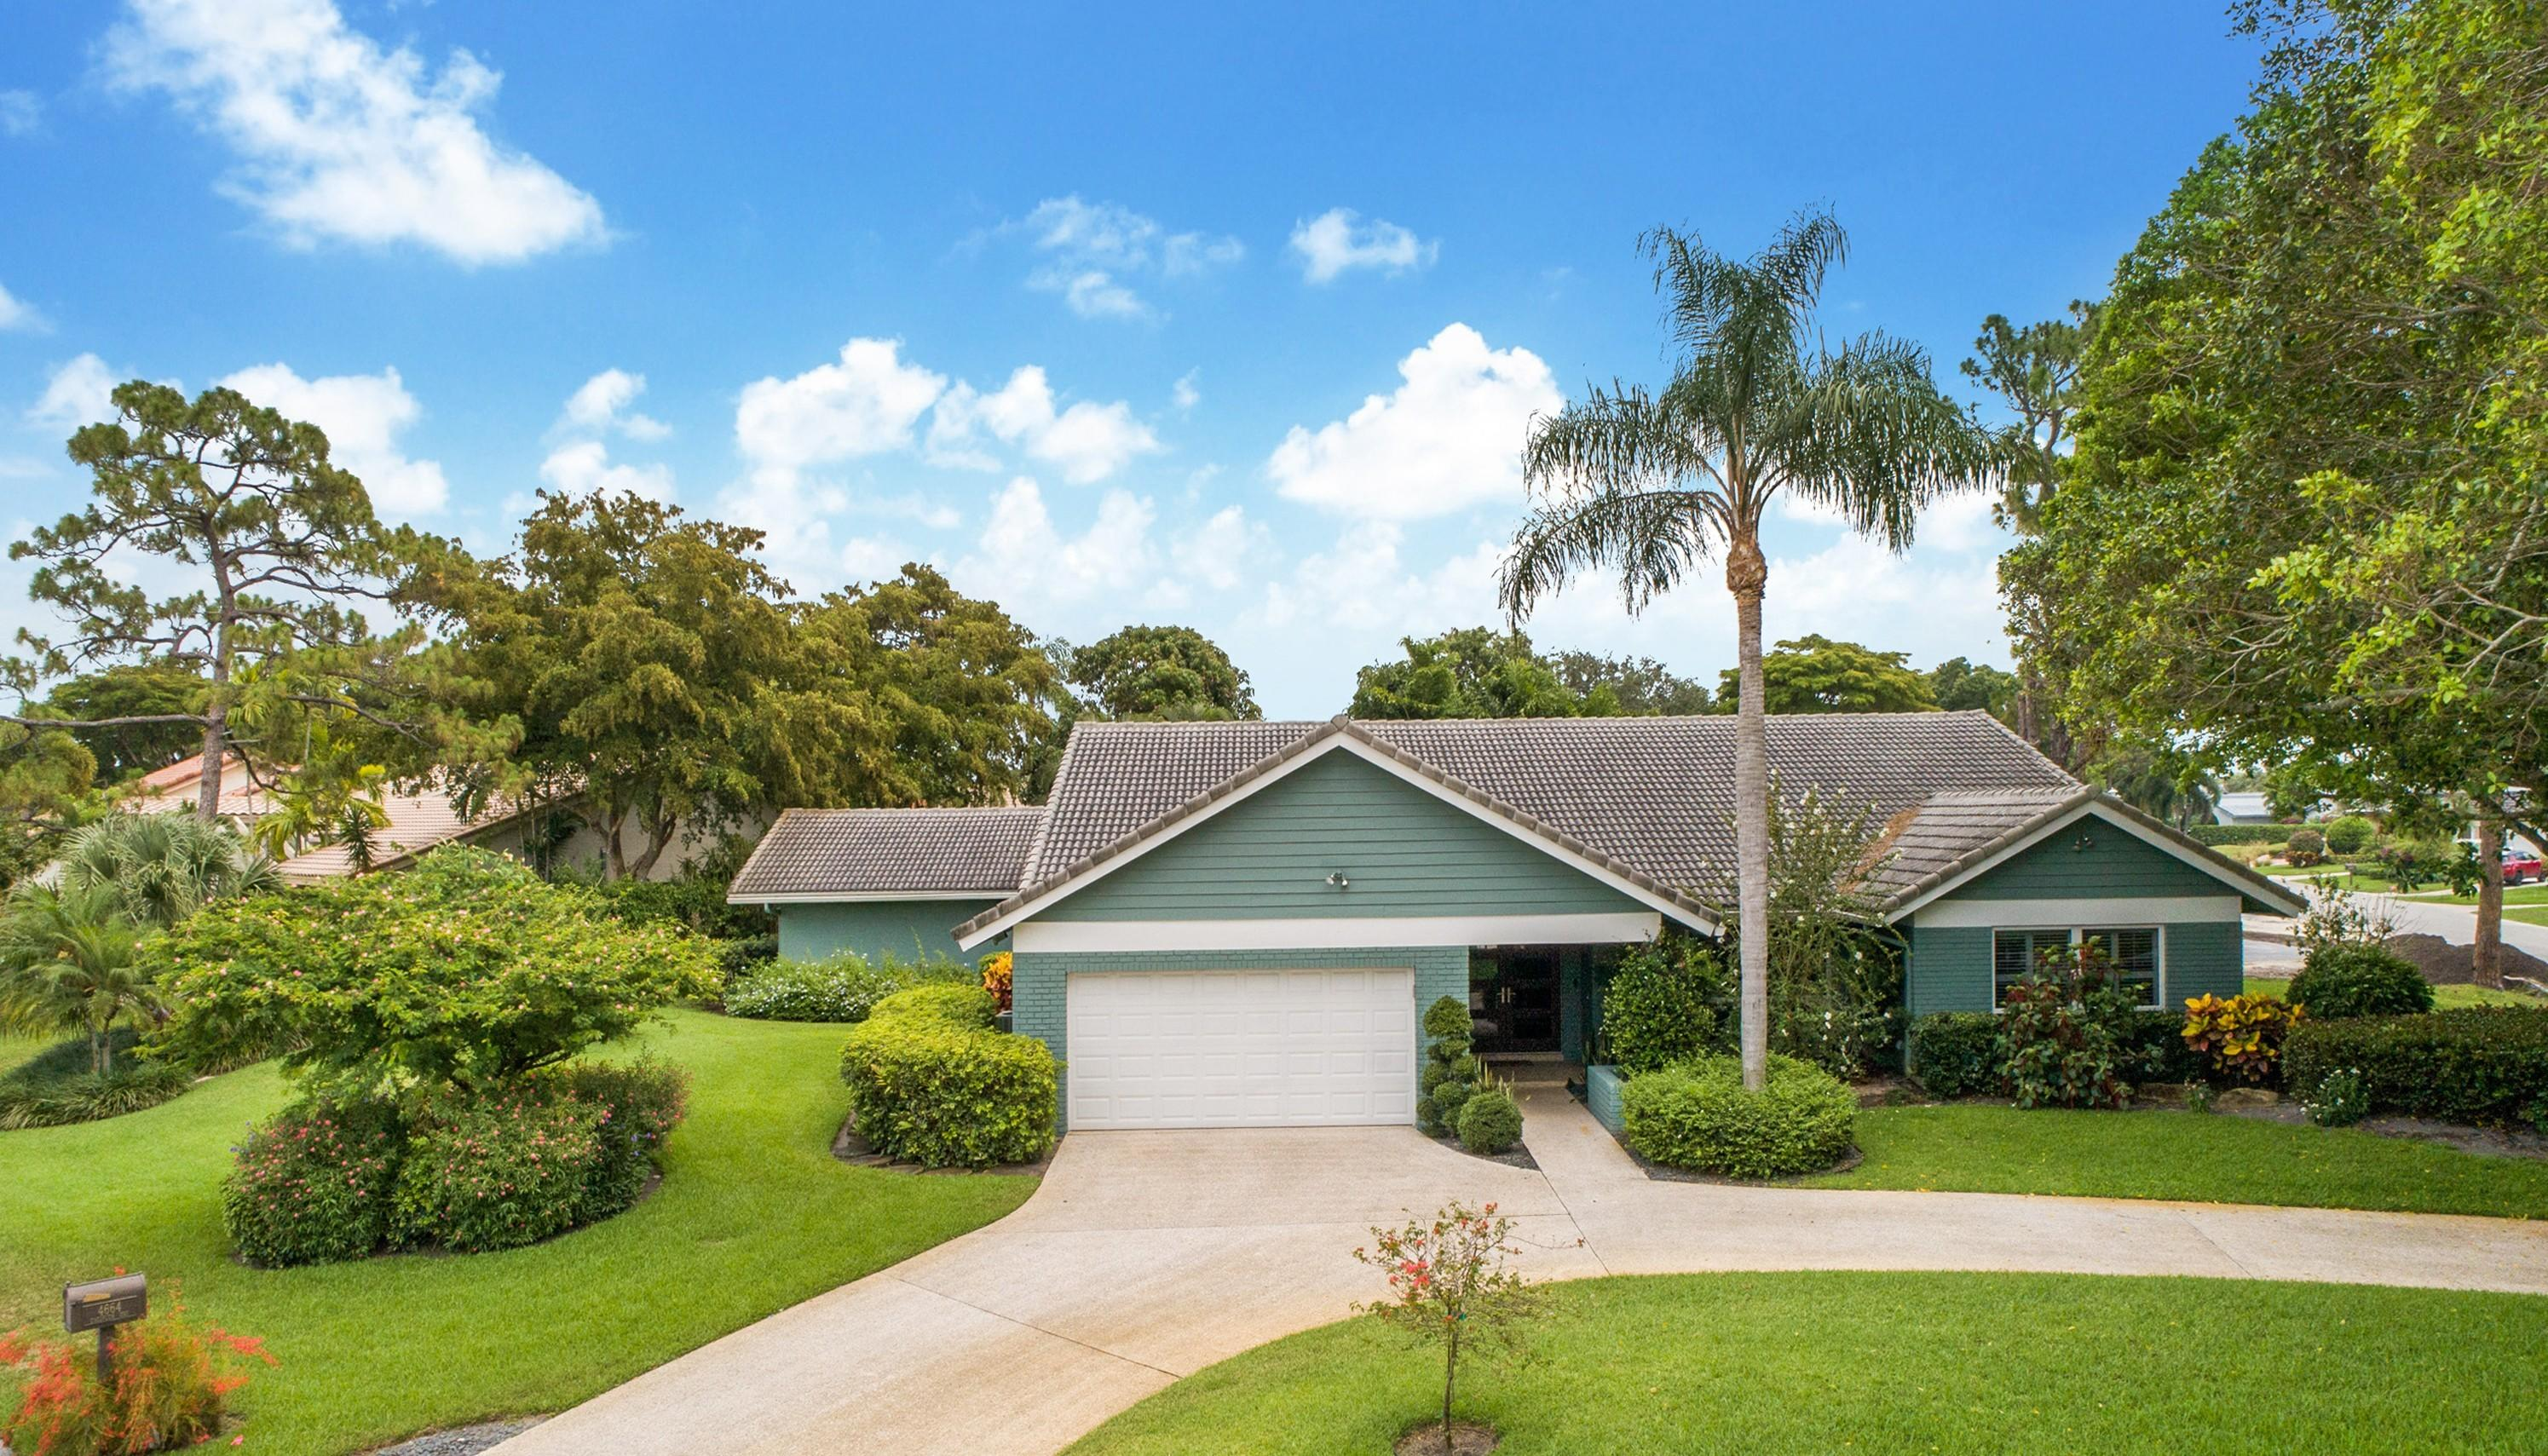 For Sale 10717905, FL